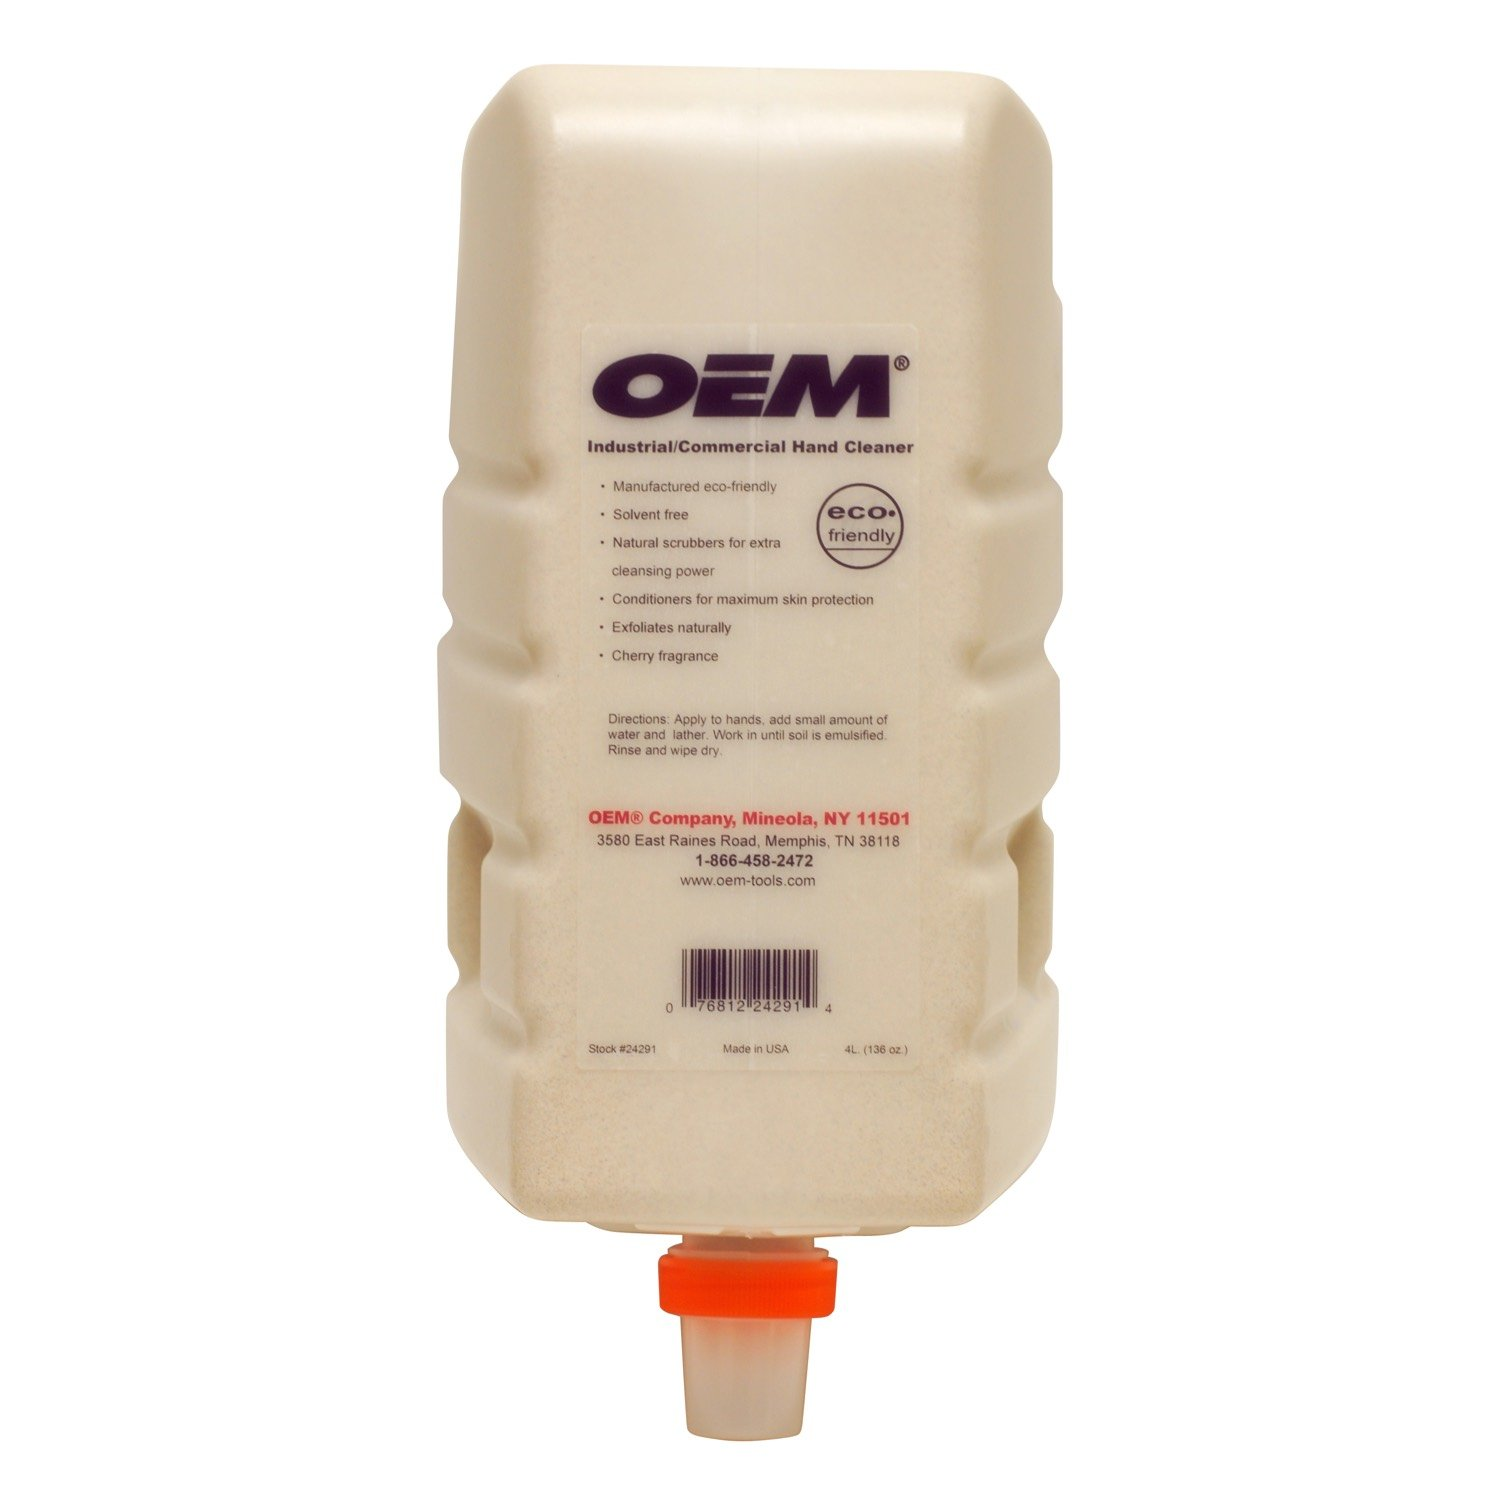 OEMTOOLS 24291 4-Liter Hand Cleaner Refill Bottle